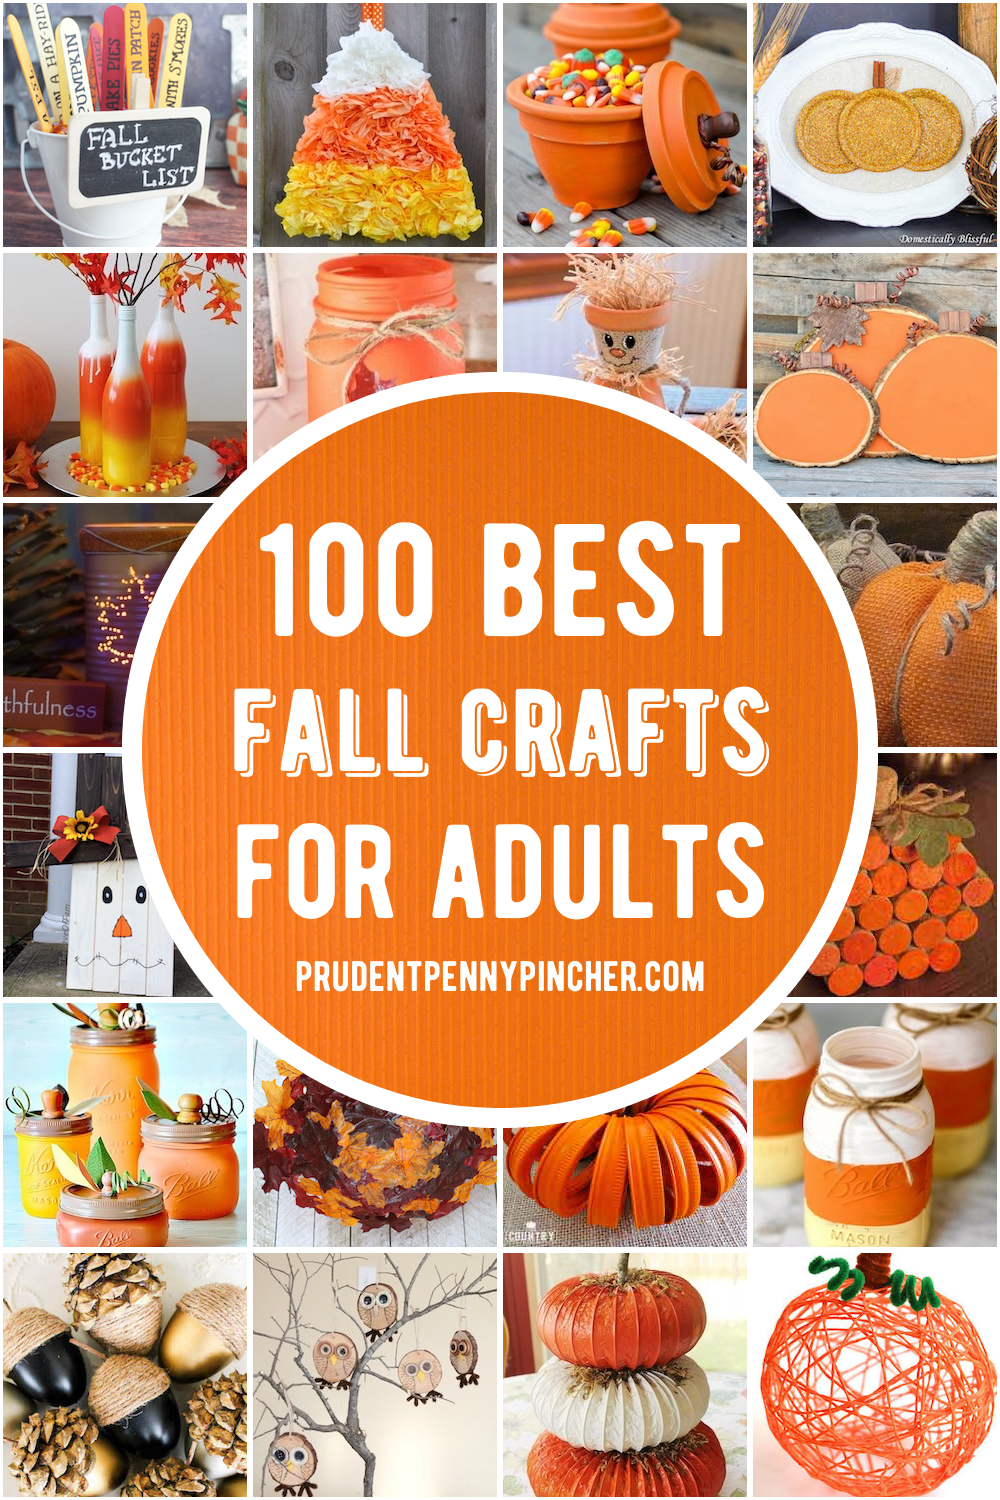 14+ Fall crafts for older adults ideas in 2021